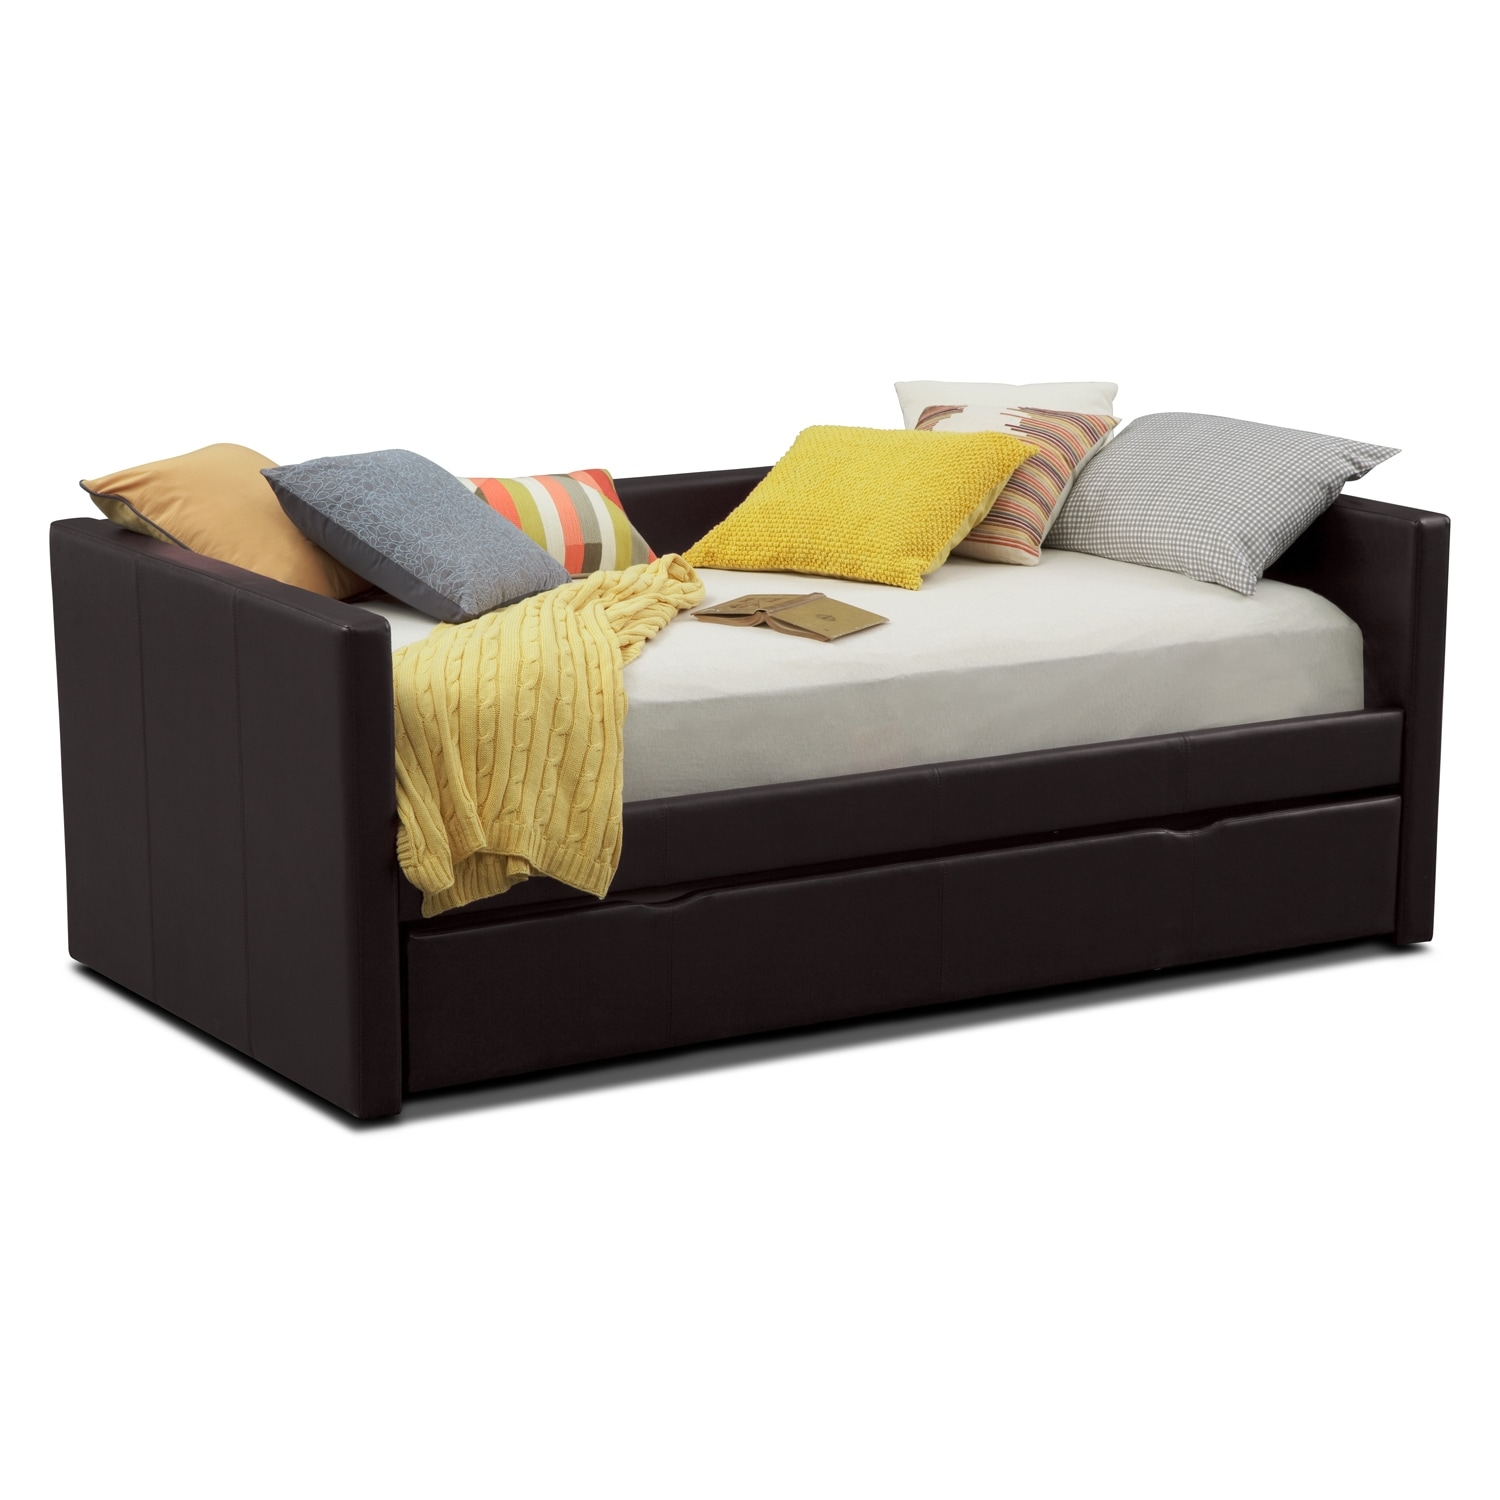 Carey Twin Daybed With Trundle Brown American Signature Furniture